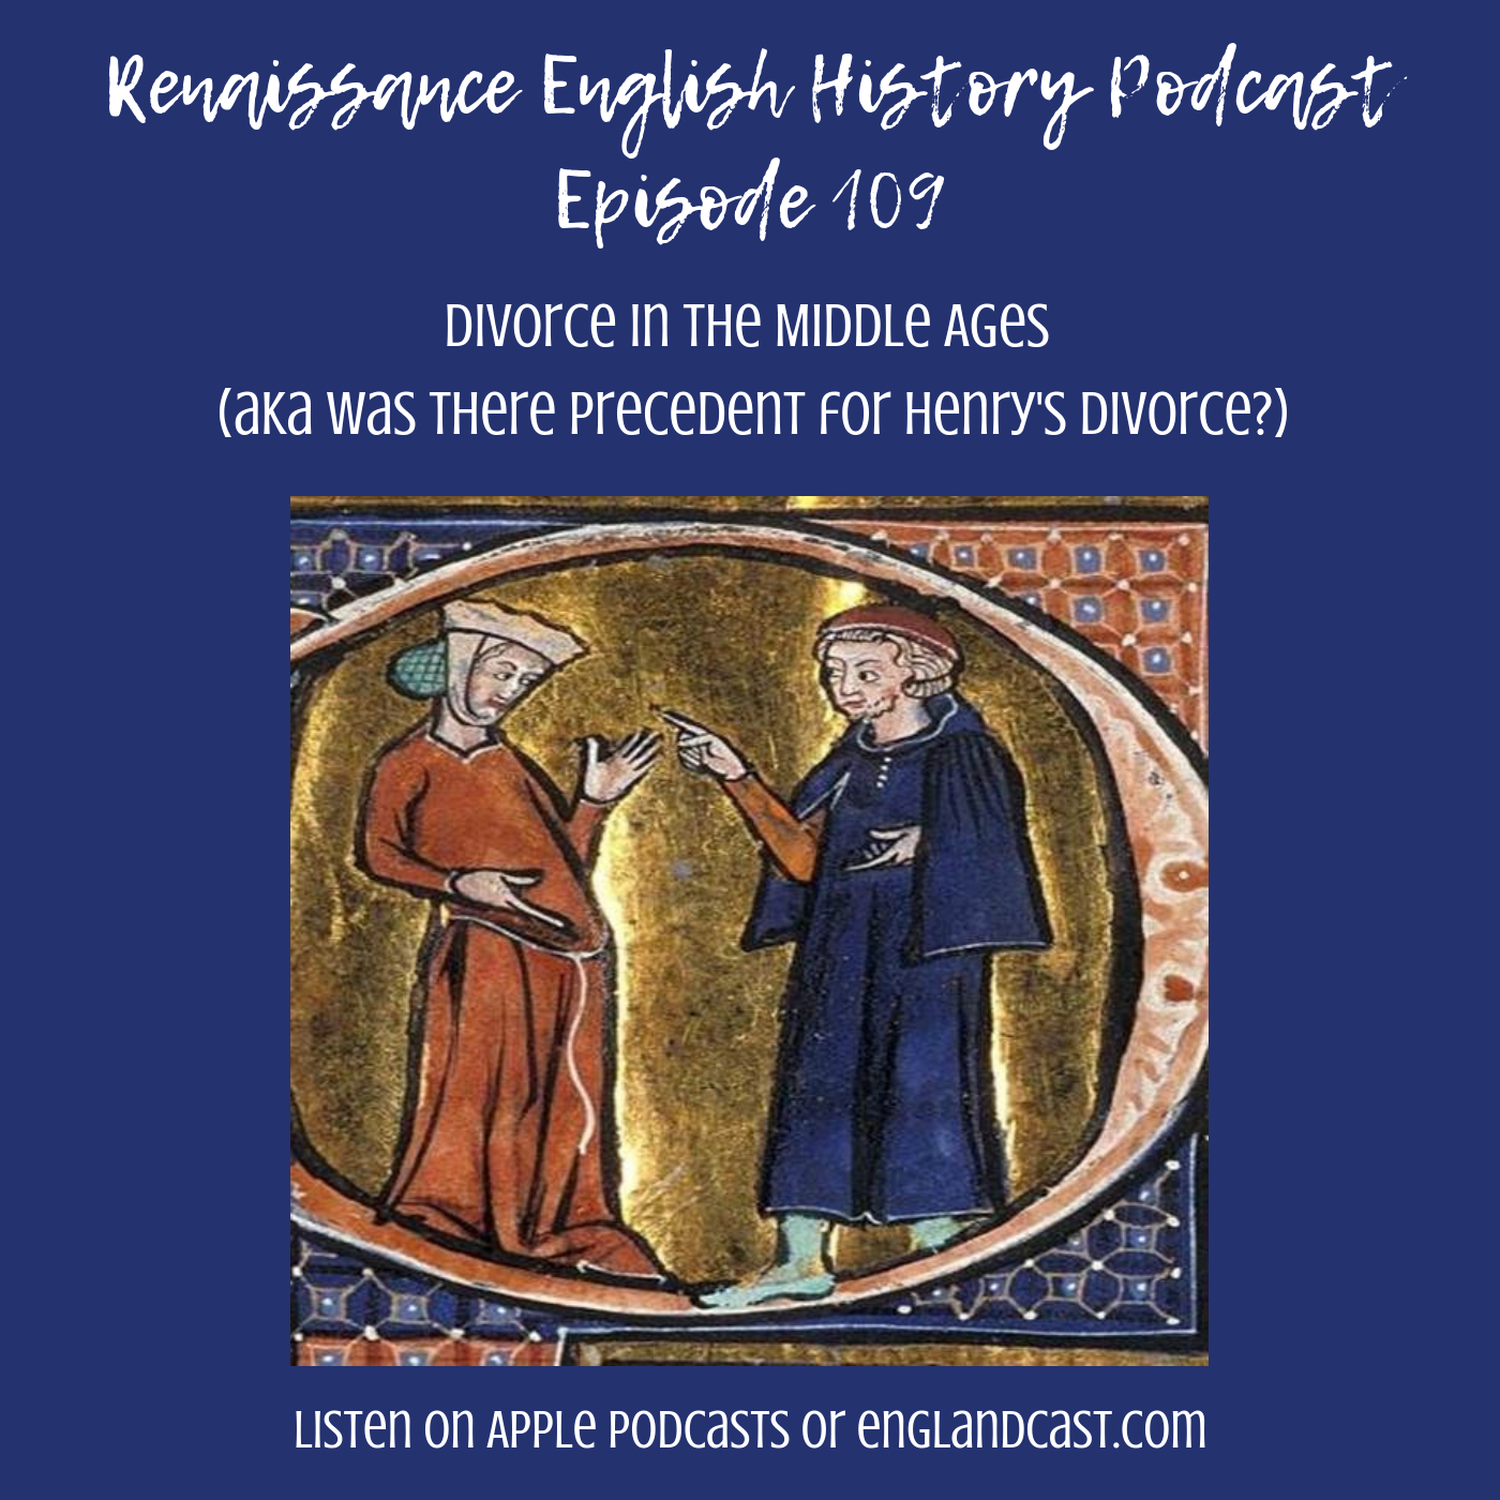 Episode 109: Divorce in the Middle Ages (aka was there precedent for Henry's request)